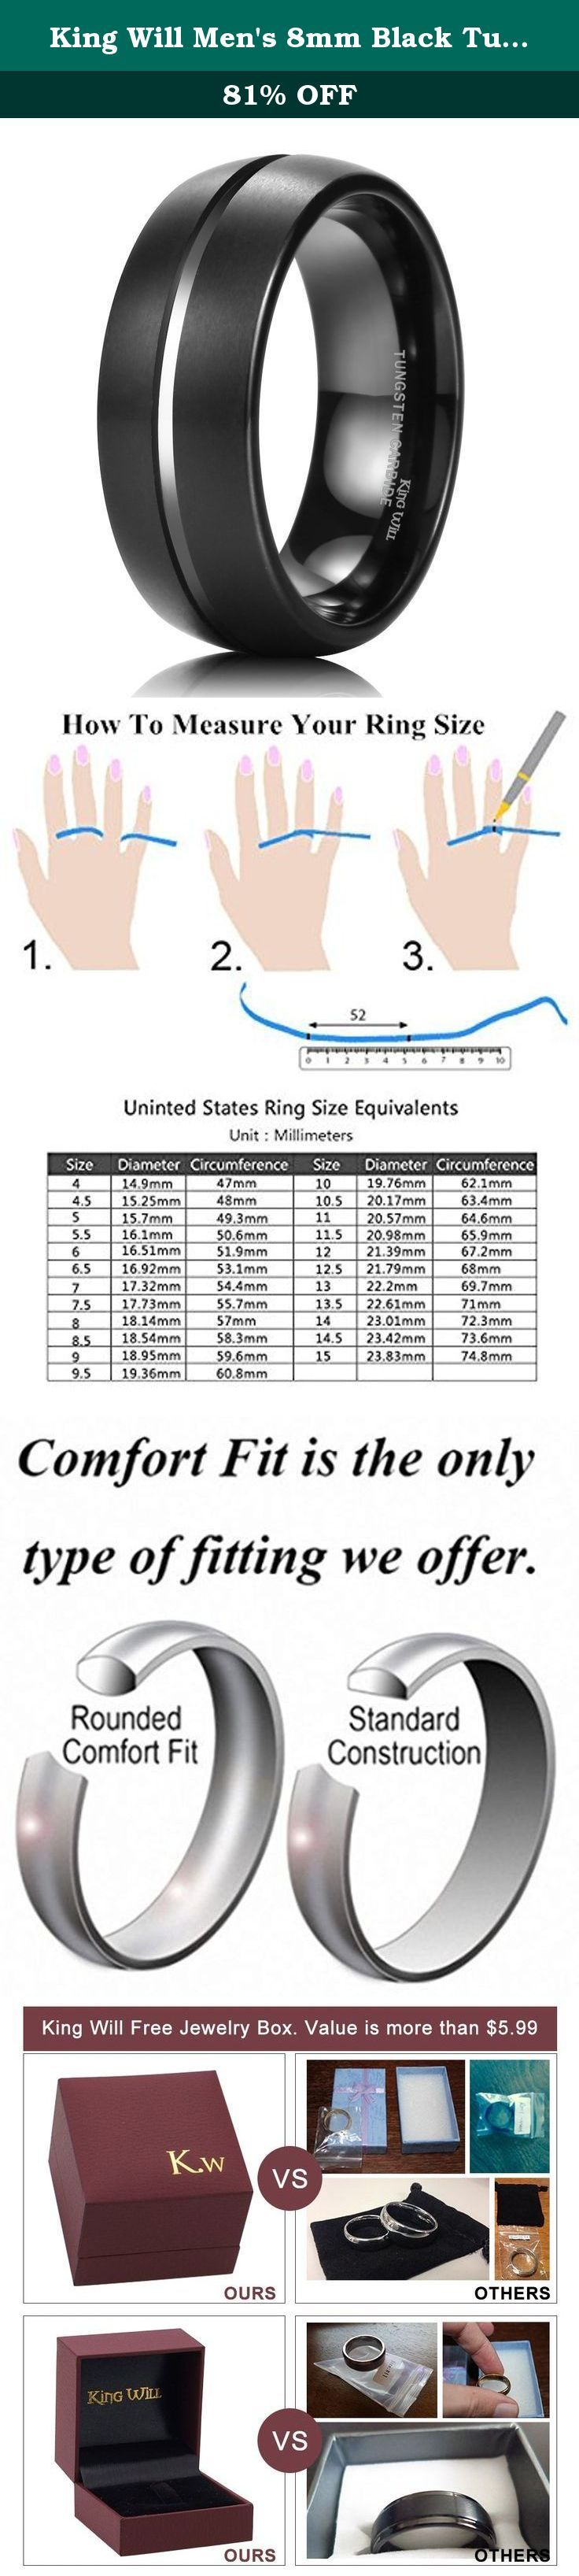 "King Will Men's 8mm Black Tungsten Carbide Ring Domed Matte Finish Groove Wedding Band Size(11). King Will, not only No.1 brand of tungsten carbide ring on Amazon King Will, not only an excellent brand of tungsten ring on Amazon, but also means strong will and great courage like spirit of a king, whenever facing at any dilemma. ""You never know how strong you are until being strong is the only choice you have."" Tungsten, hardness is second only to diamond. Inspired by the meaning behind..."